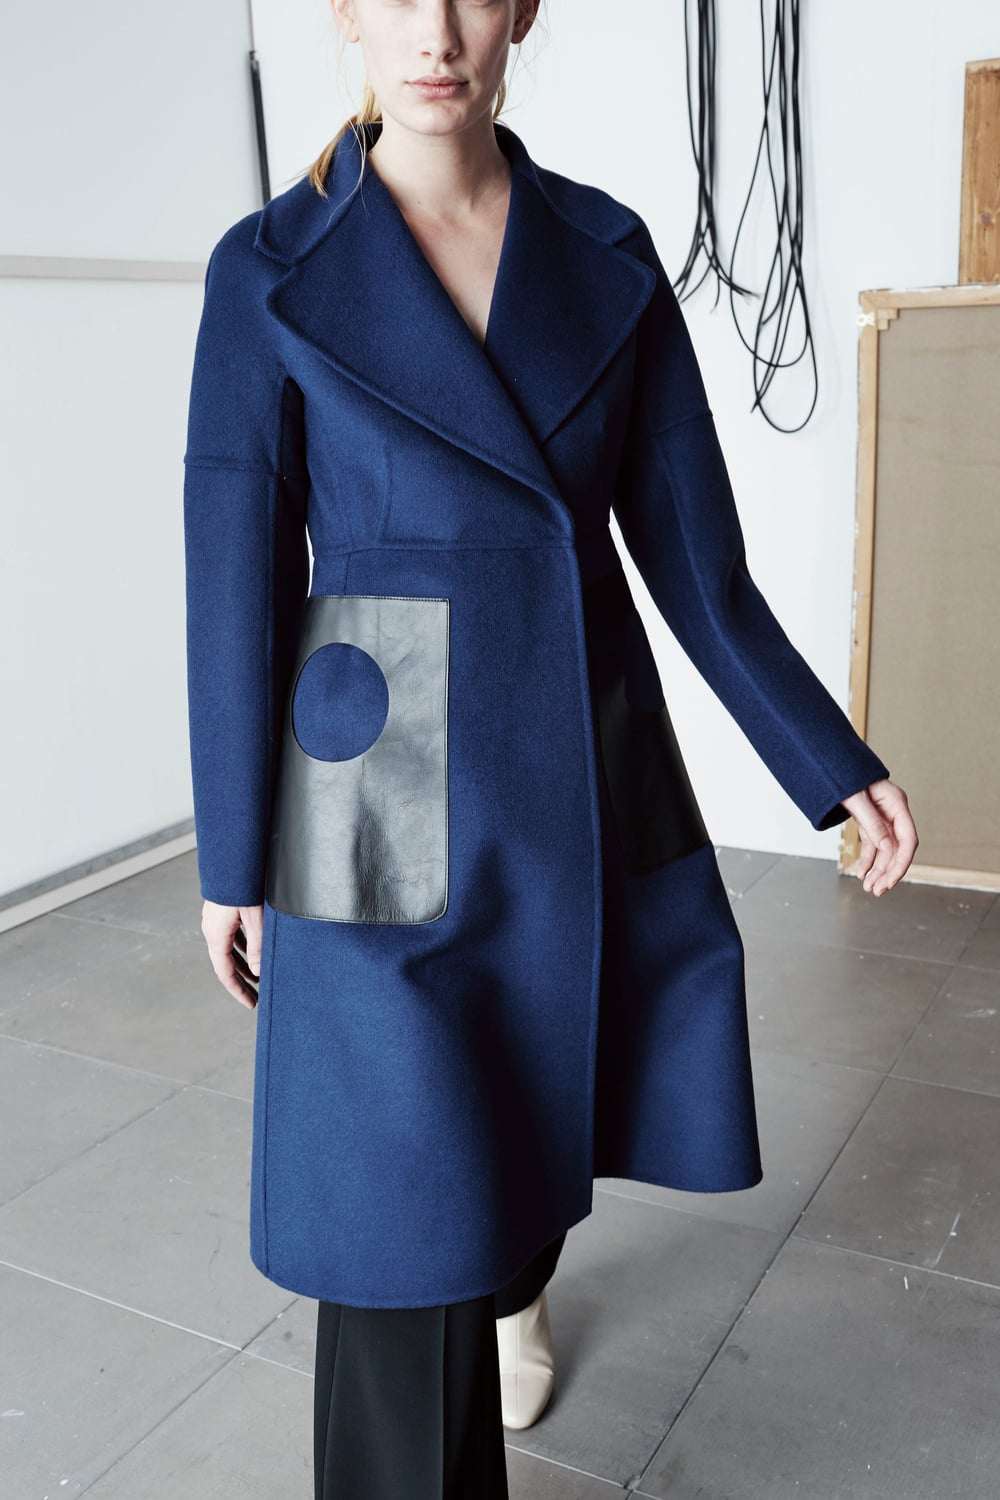 sportmax-pre-fall-2016-lookbook-08.jpg